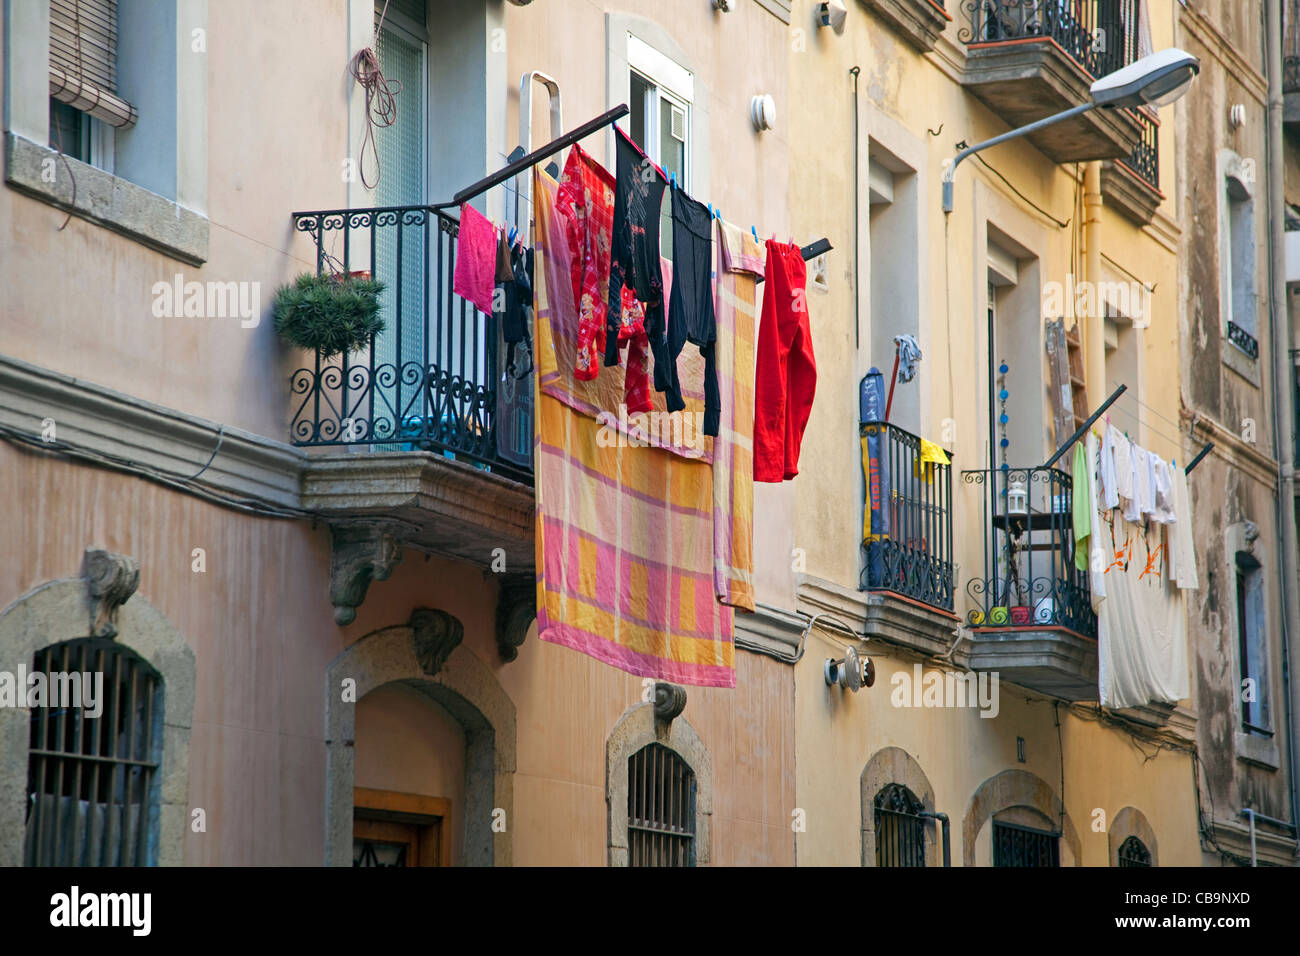 Laundry drying from balcony in the La Barceloneta quarter in Barcelona, Spain - Stock Image